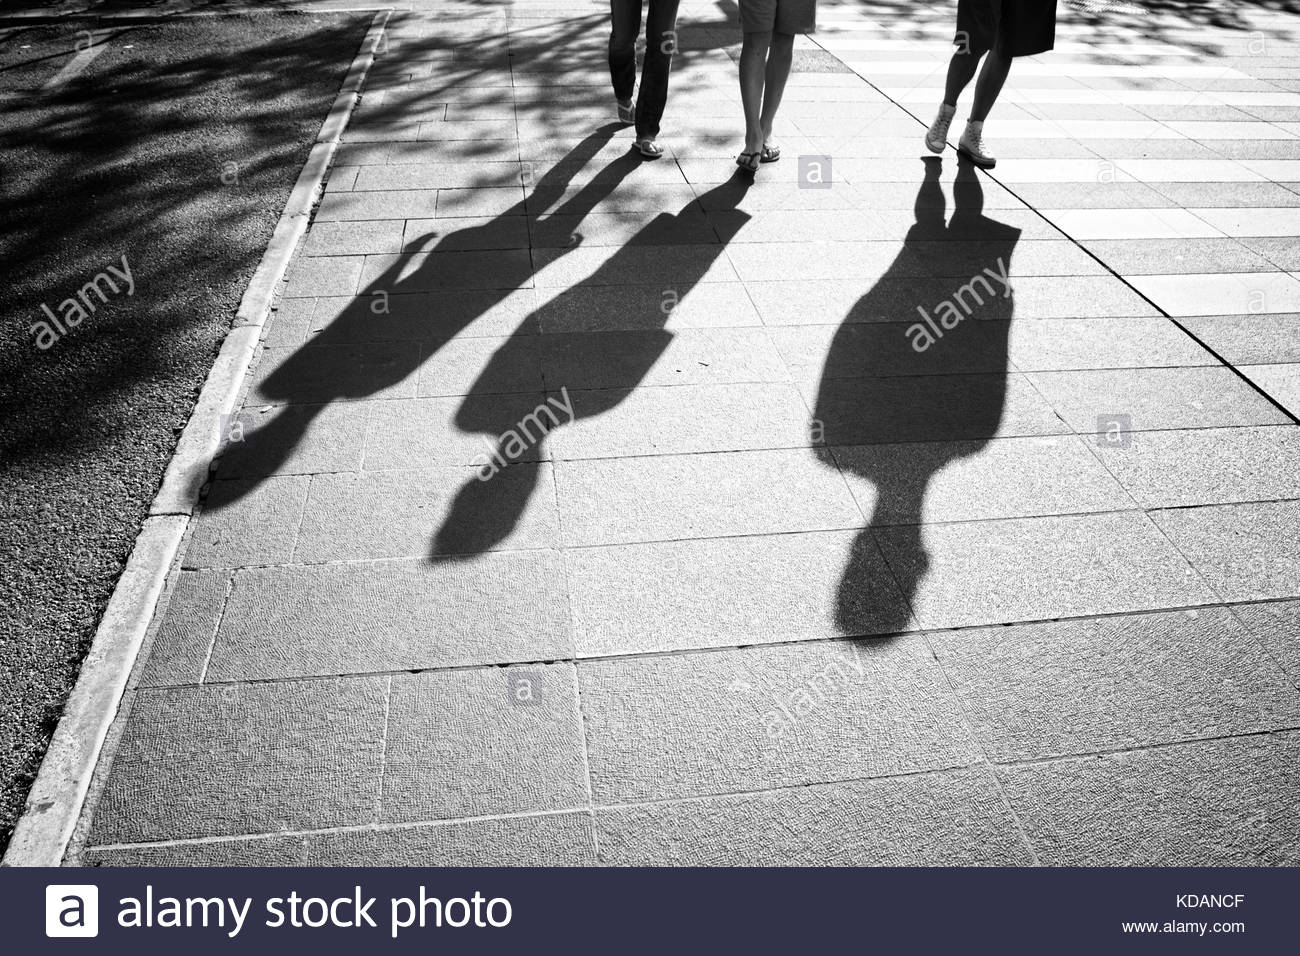 People shadows walking on city street on hot summer sunny day. People walking down the street. Monochrome black - Stock Image